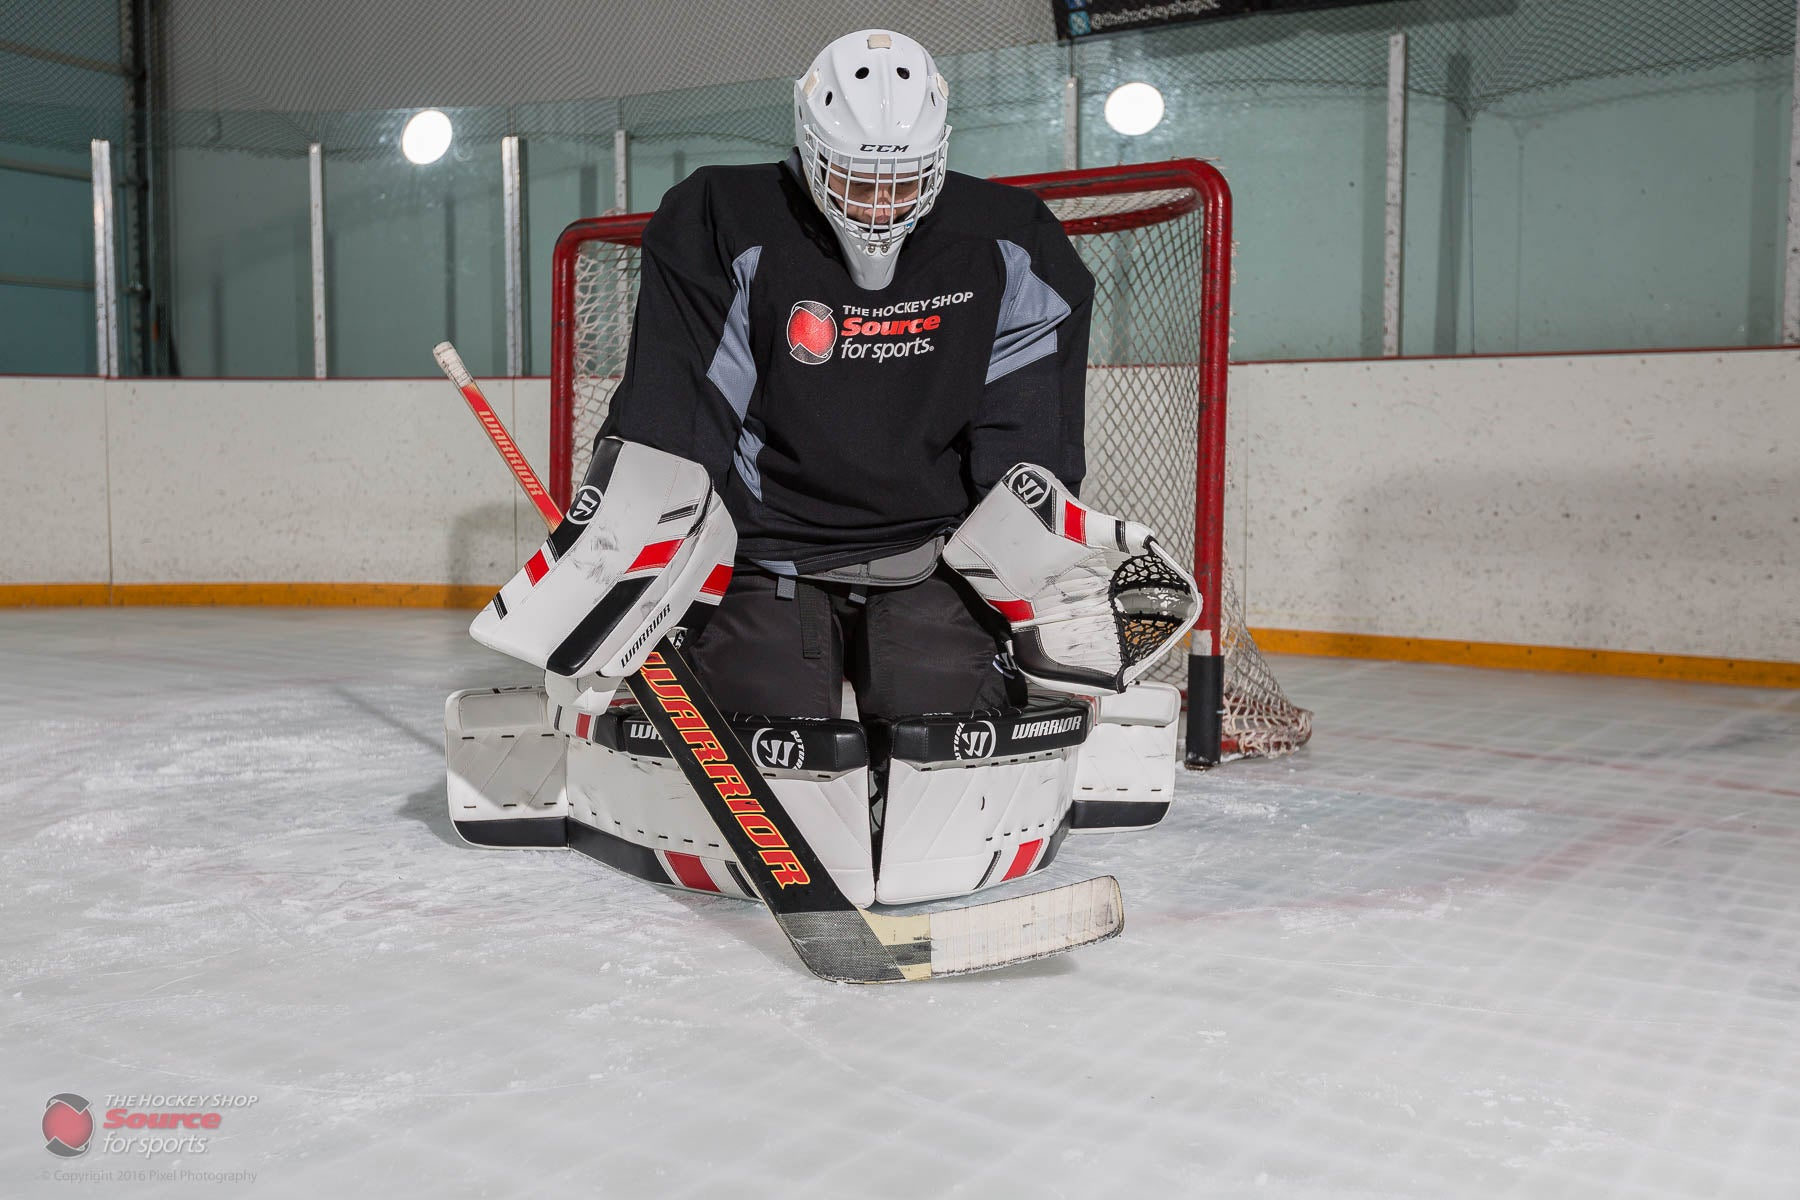 b781aab2663 Warrior Ritual G3 Custom Leg Pad Review – The Hockey Shop Source For ...